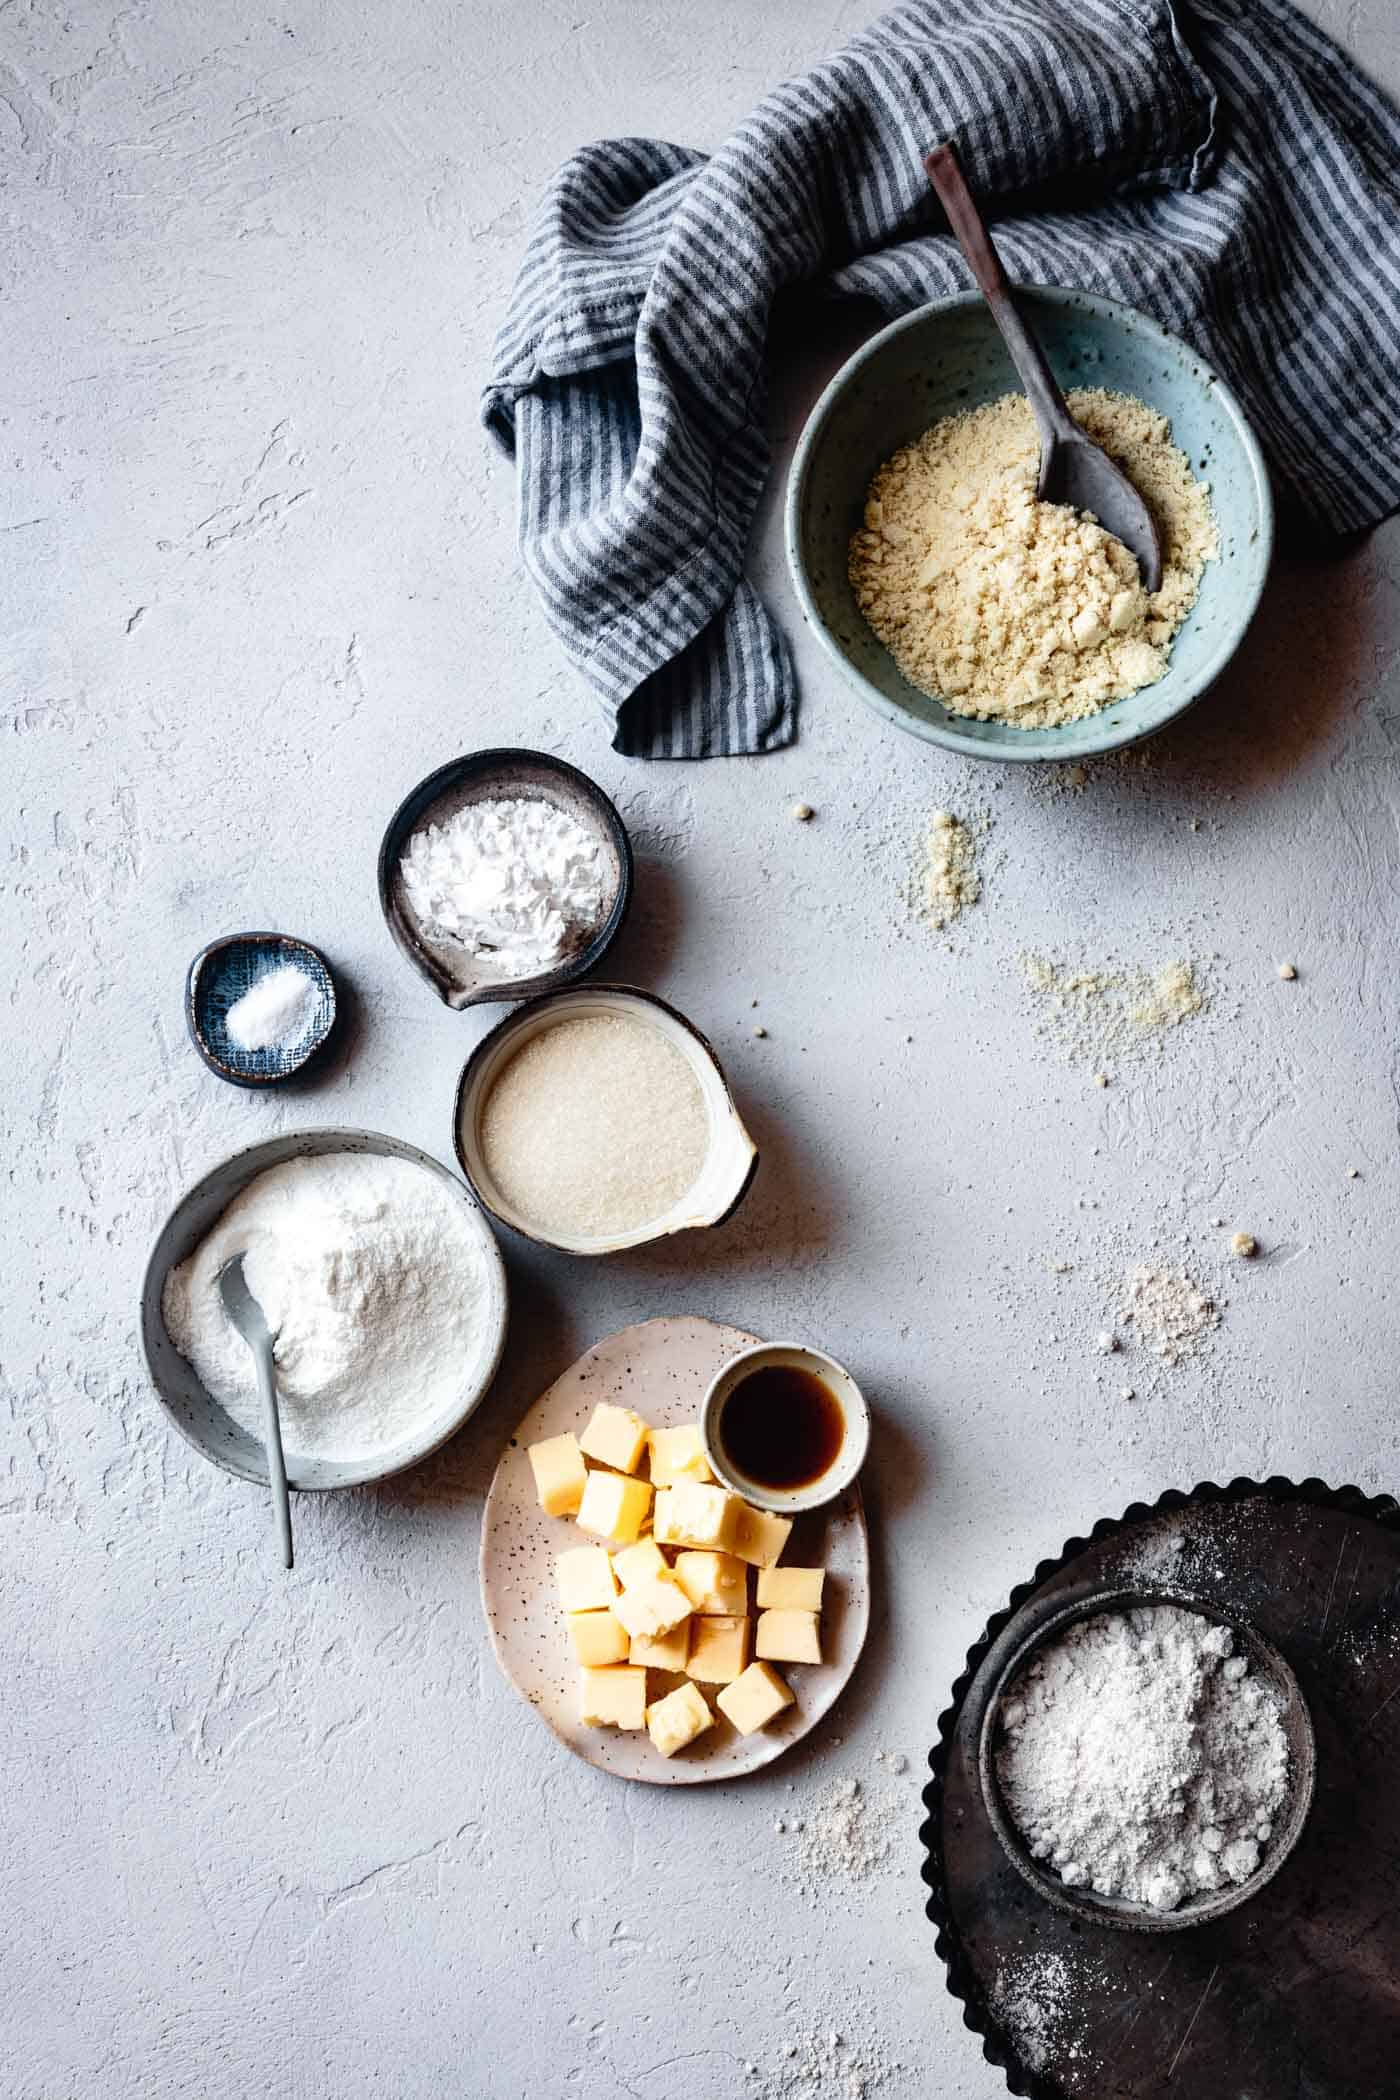 ingredients for easy gluten-free tart crust recipe